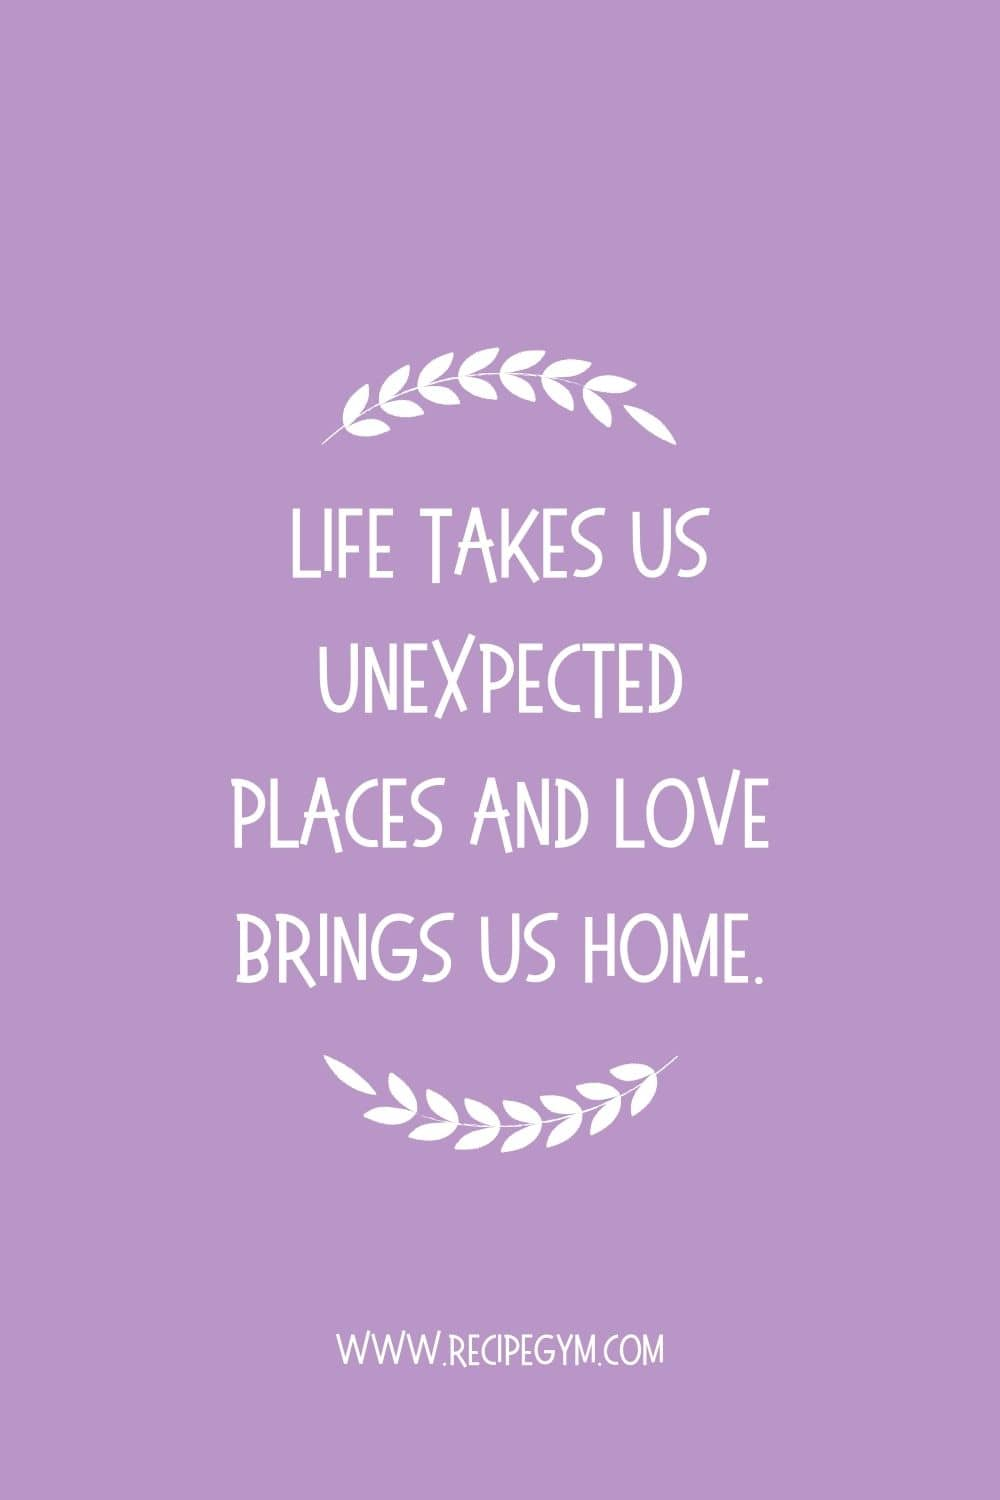 40+ inspiring wall art quotes for home decor | faith fitness food